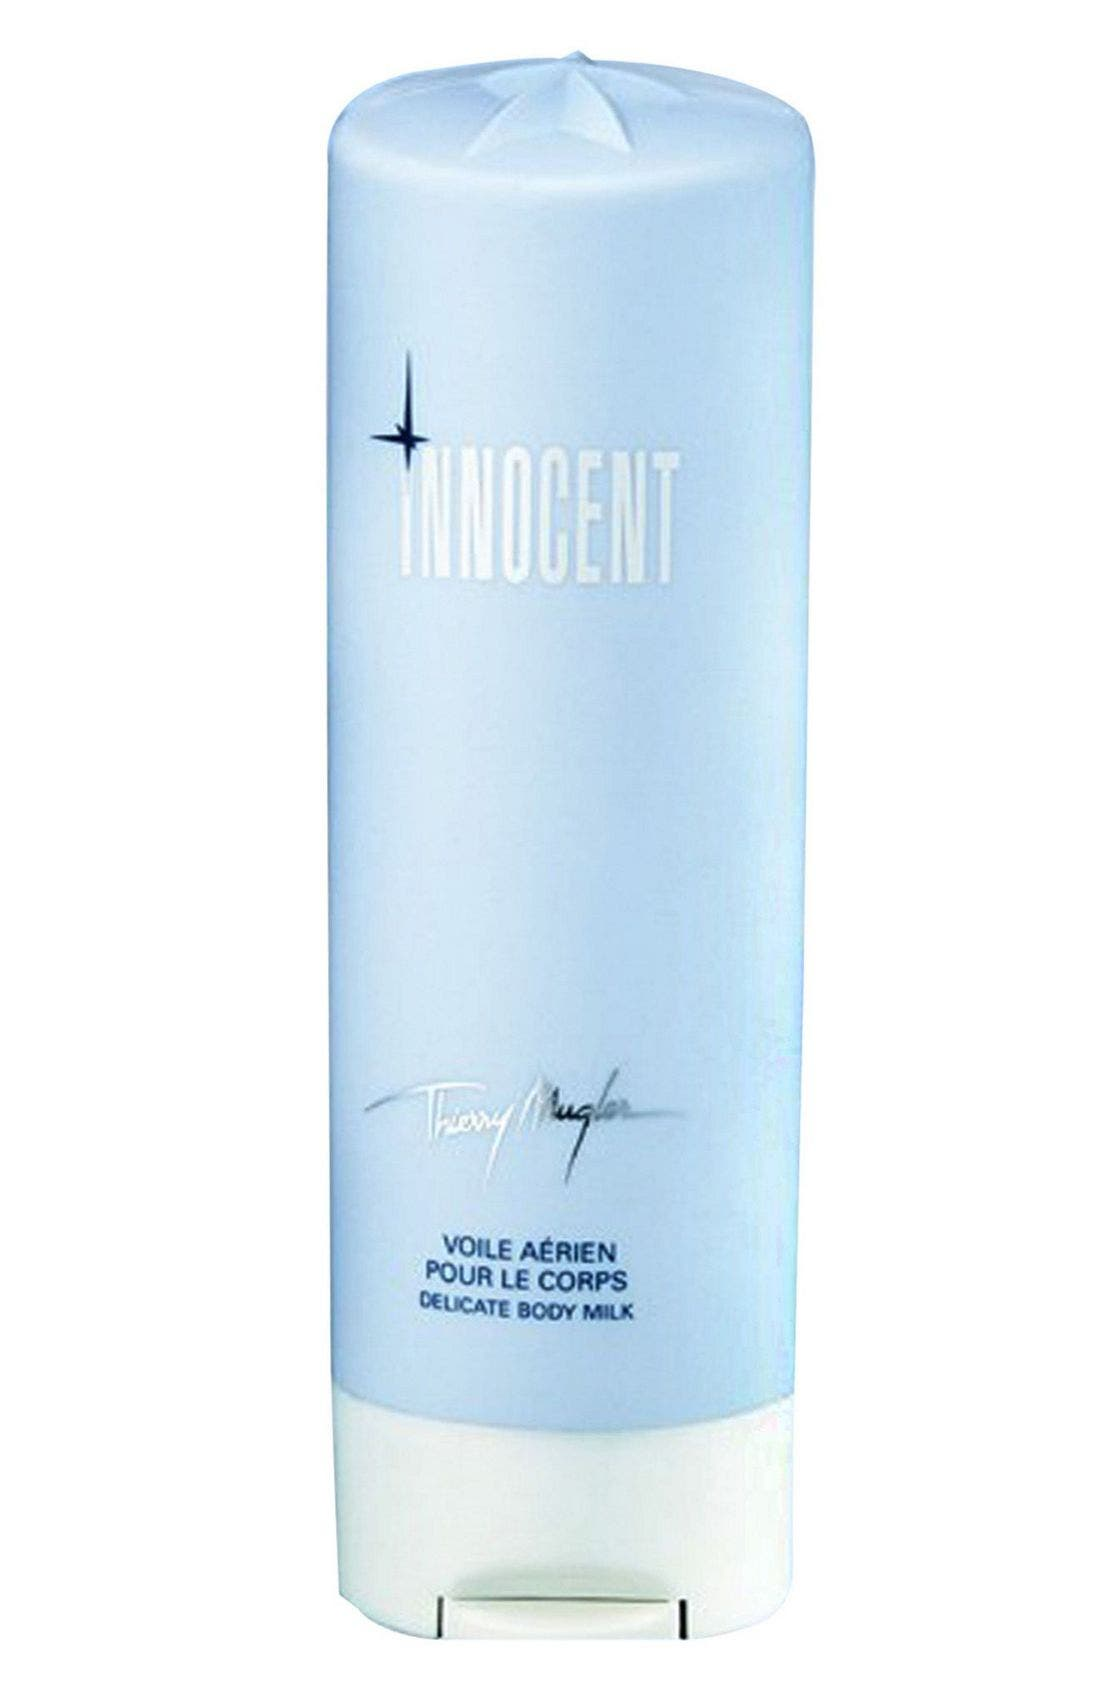 Main Image - Innocent by Thierry Mugler Delicate Body Milk